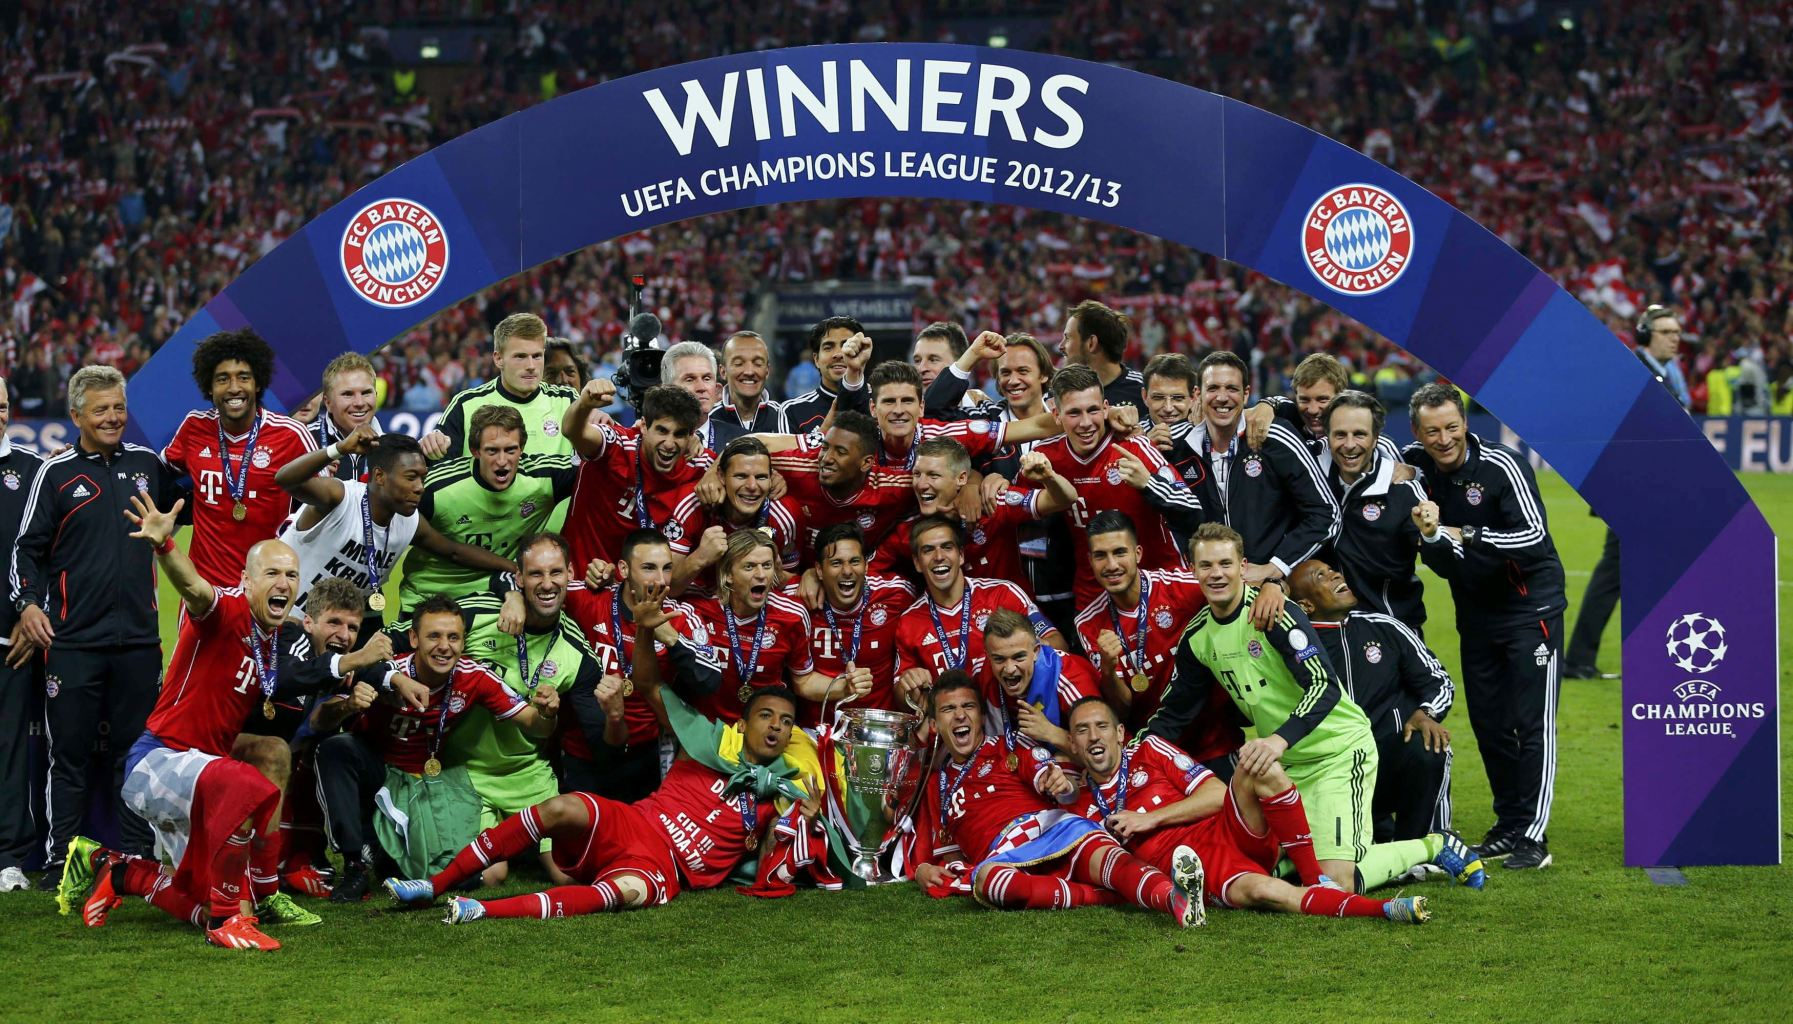 Champions League Winners